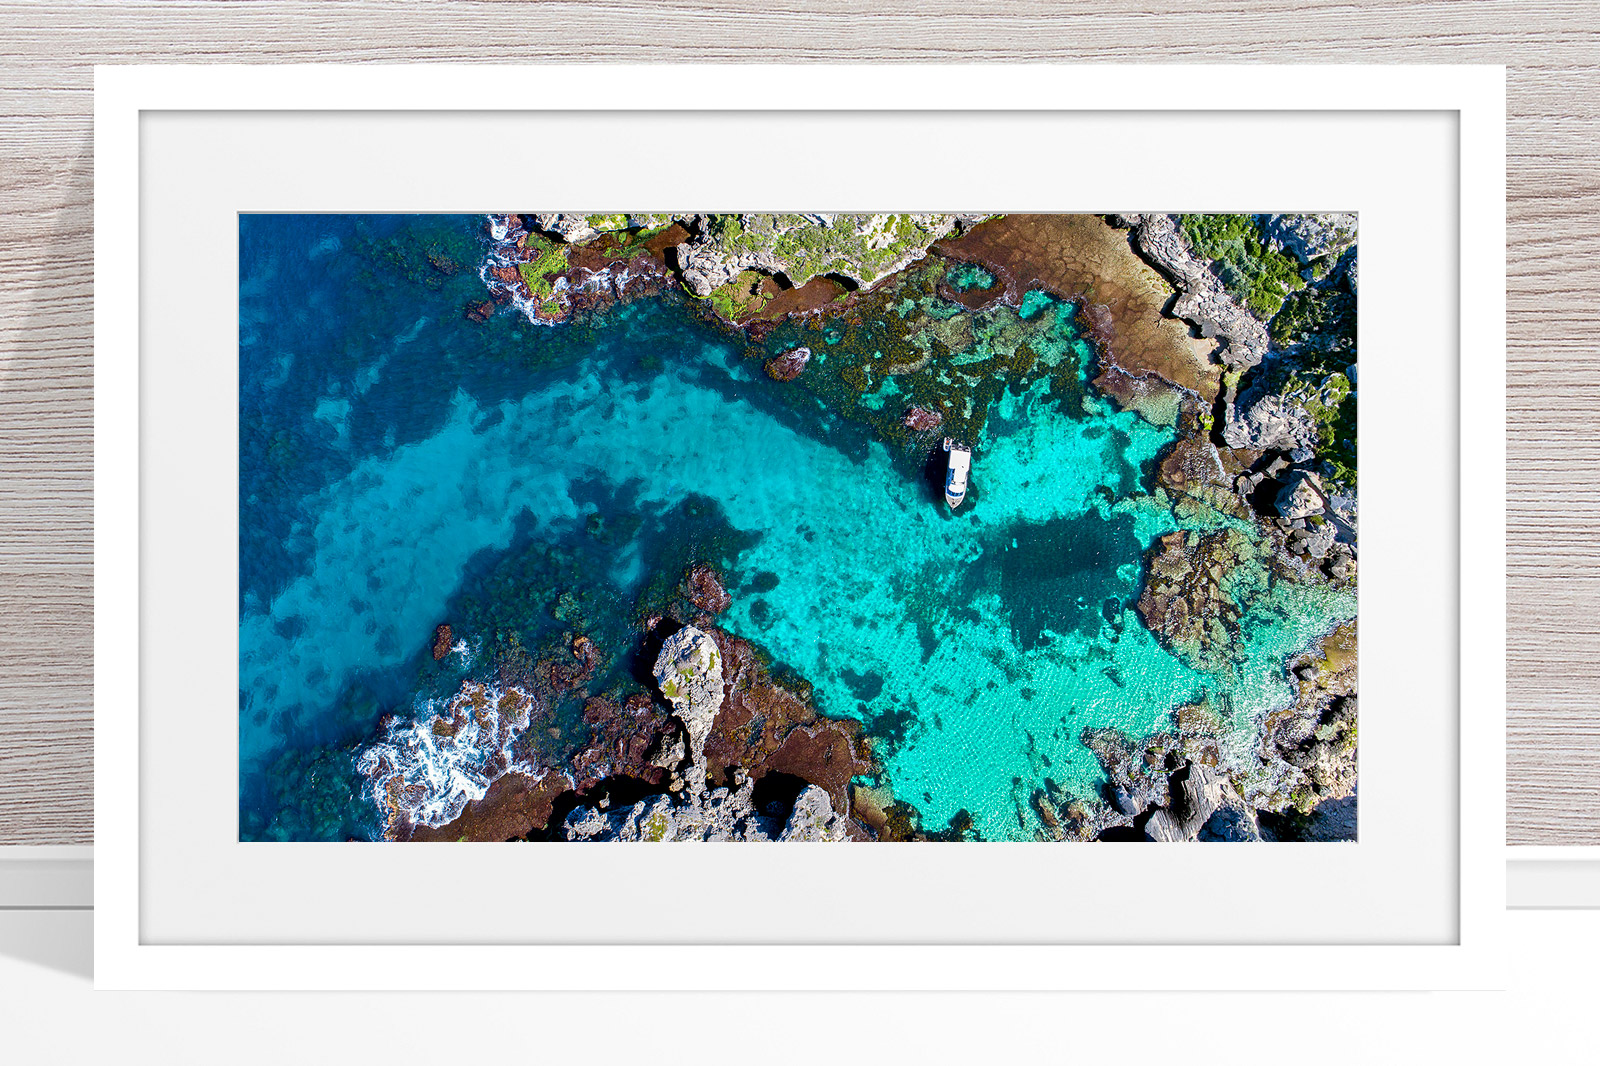 056 - Jason Mazur - 'Fish Hook Bay' White Frame